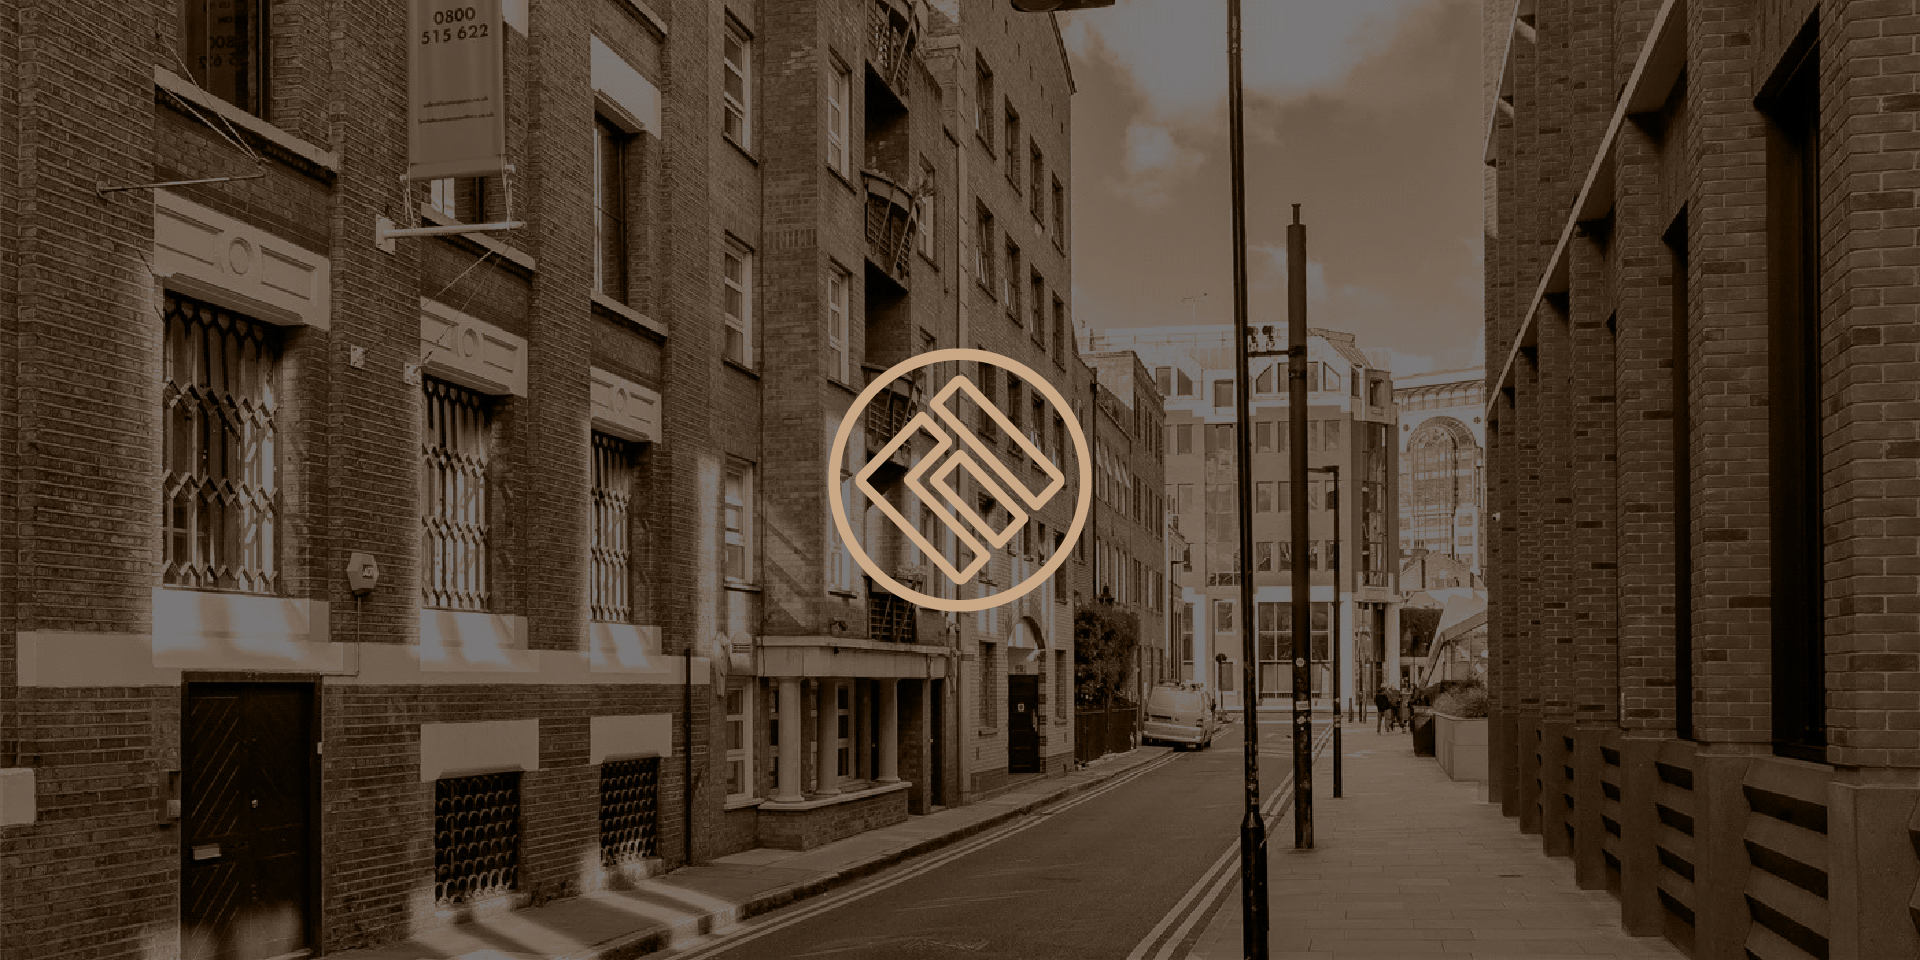 Rebranding of the central-London based chartered accounts